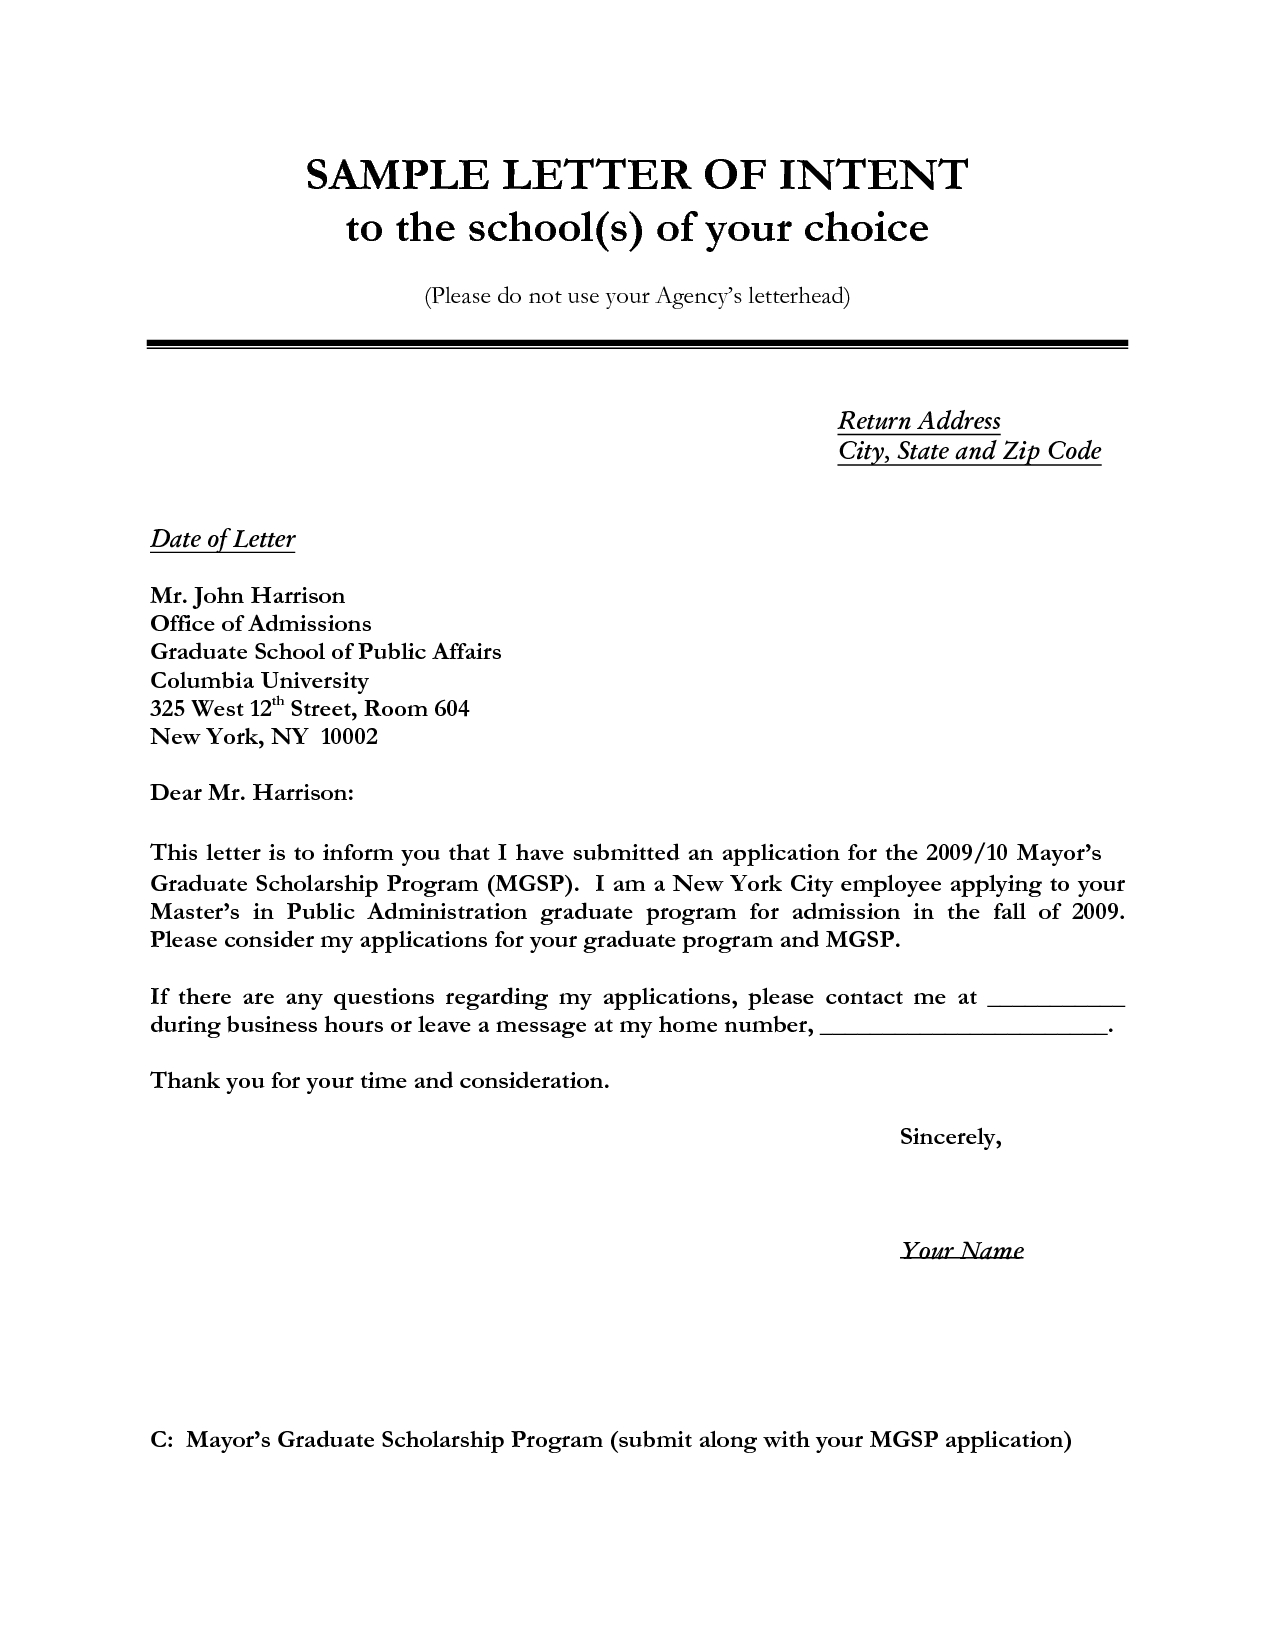 Promissory Letter Template - Letter Of Intent Sample